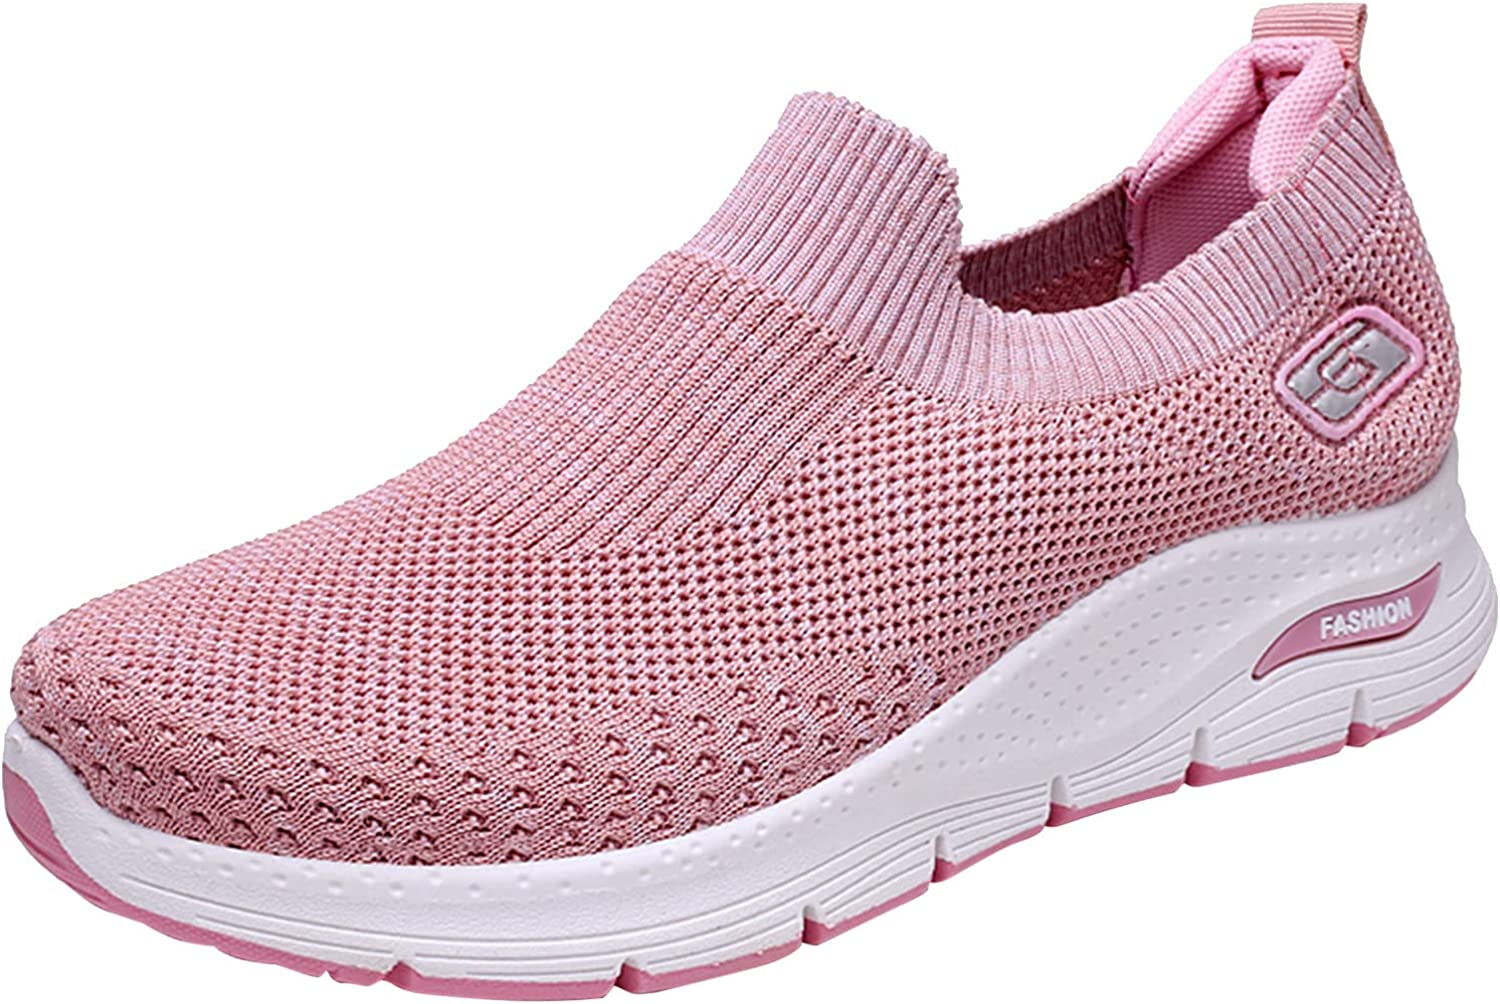 Womens Fashion Sneakers Leisure Breathable Outdoor Running Sport Shoes Casual Hiking Boots Plus Size